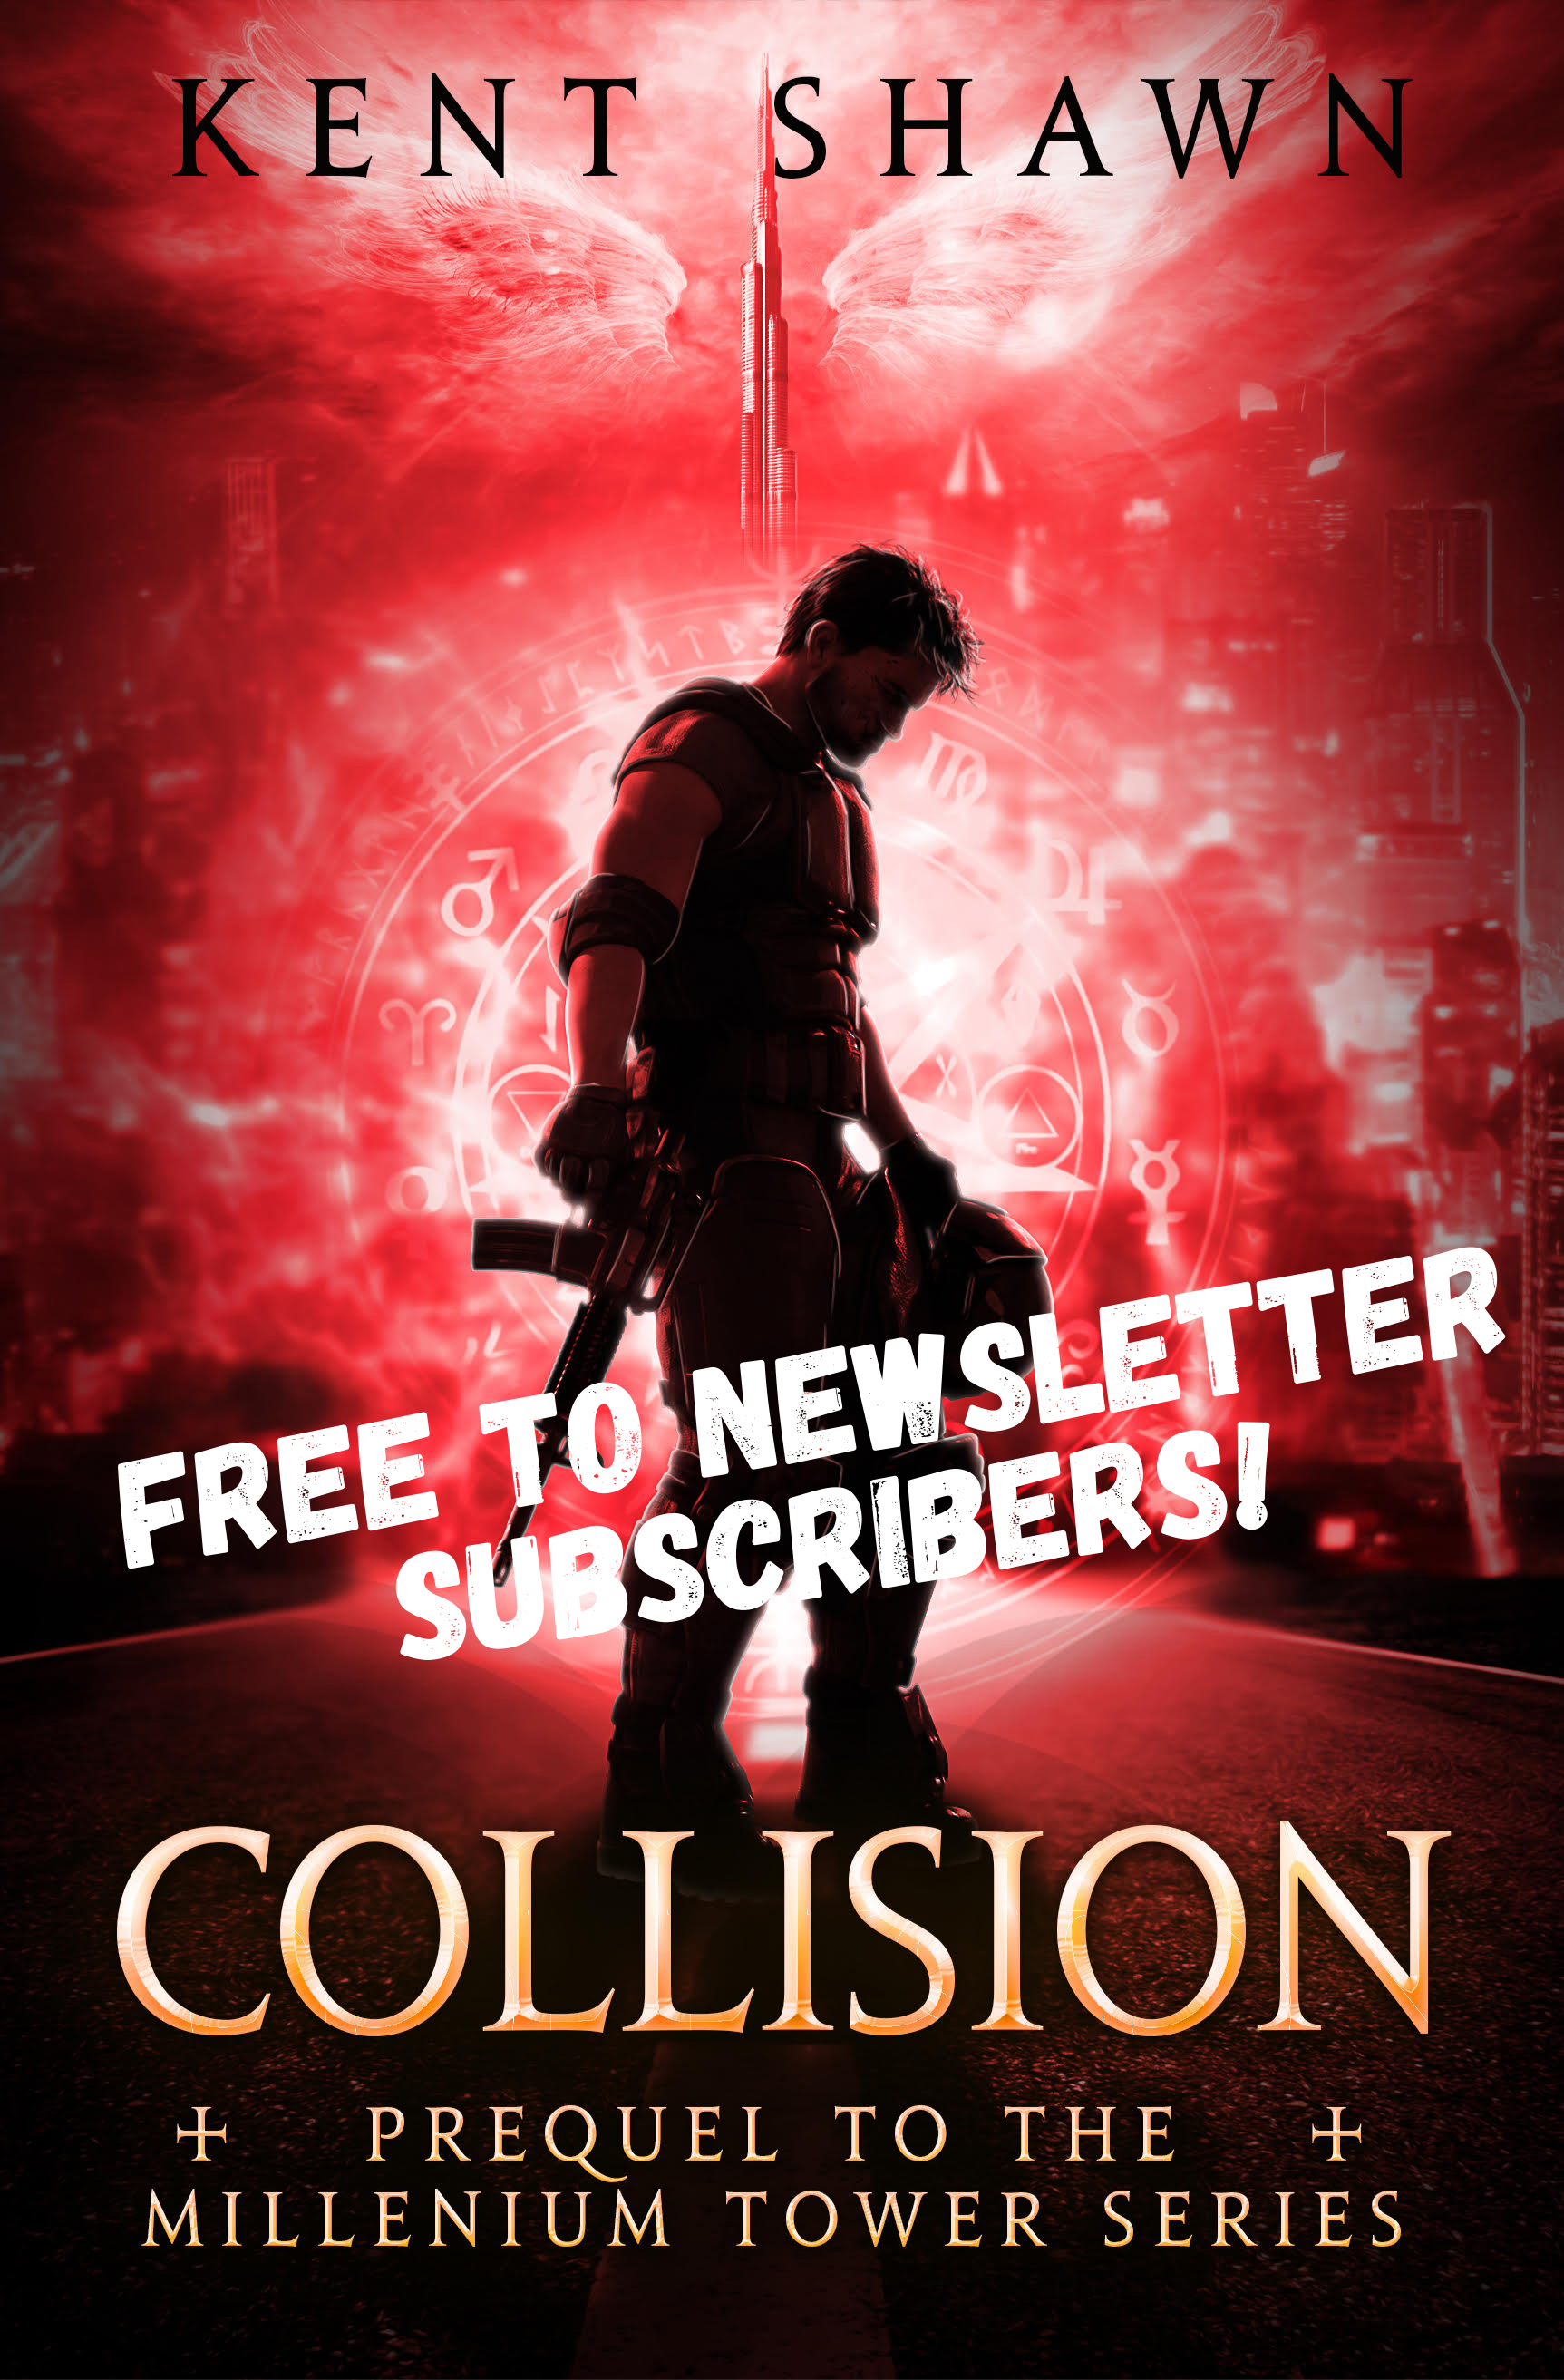 Free to Newsletter Subscribers!